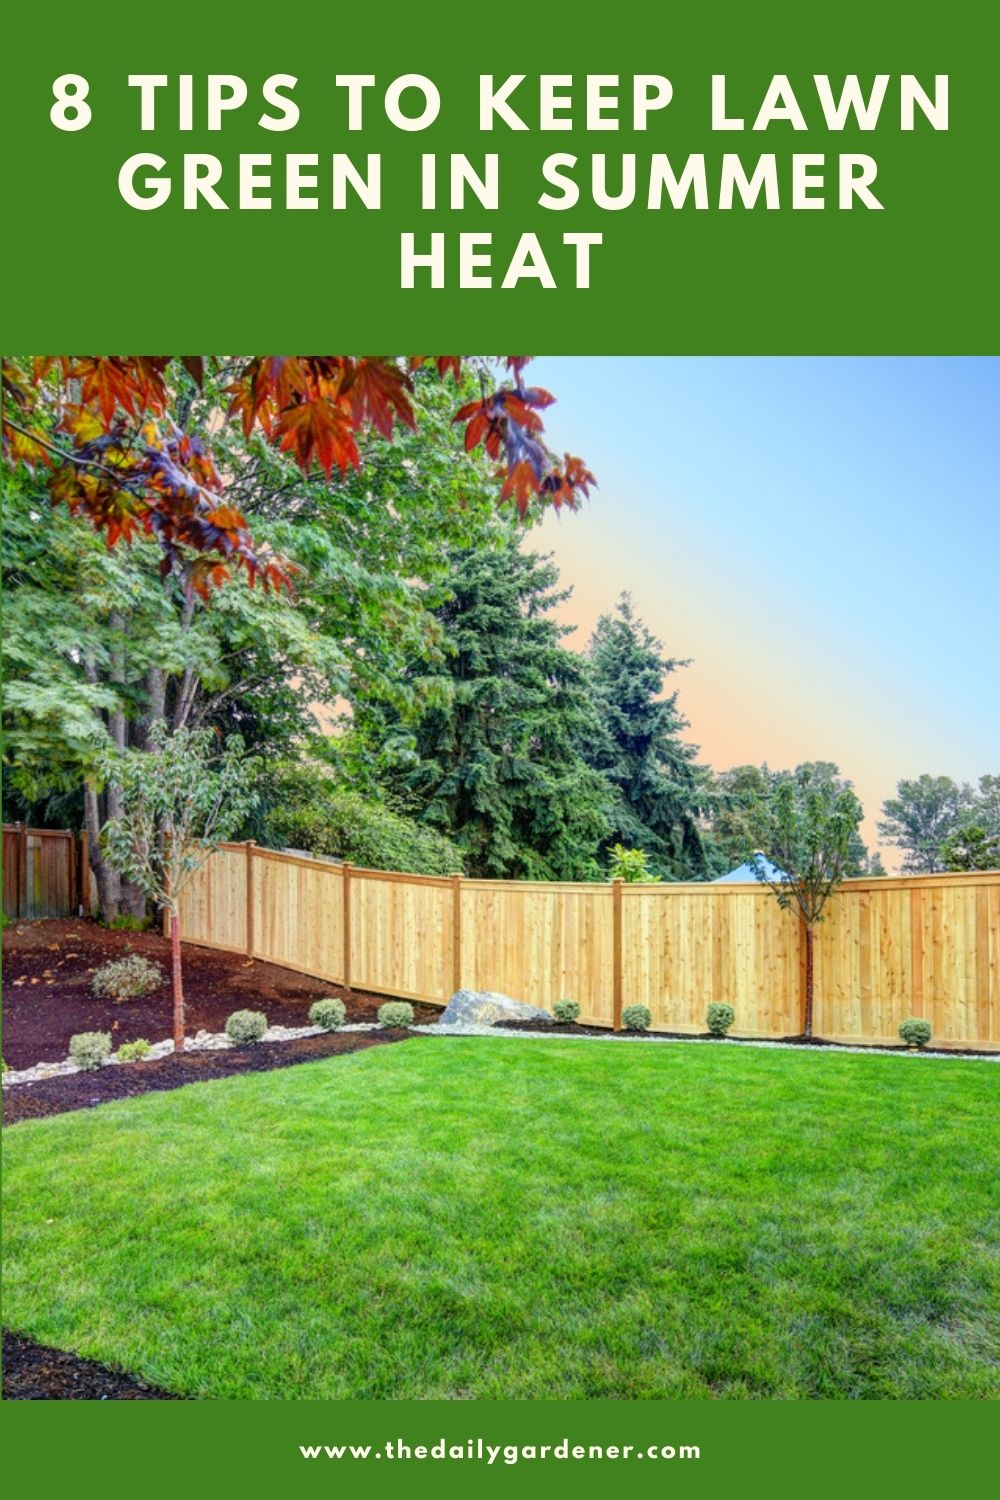 8 Tips to Keep Lawn Green in Summer Heat 1